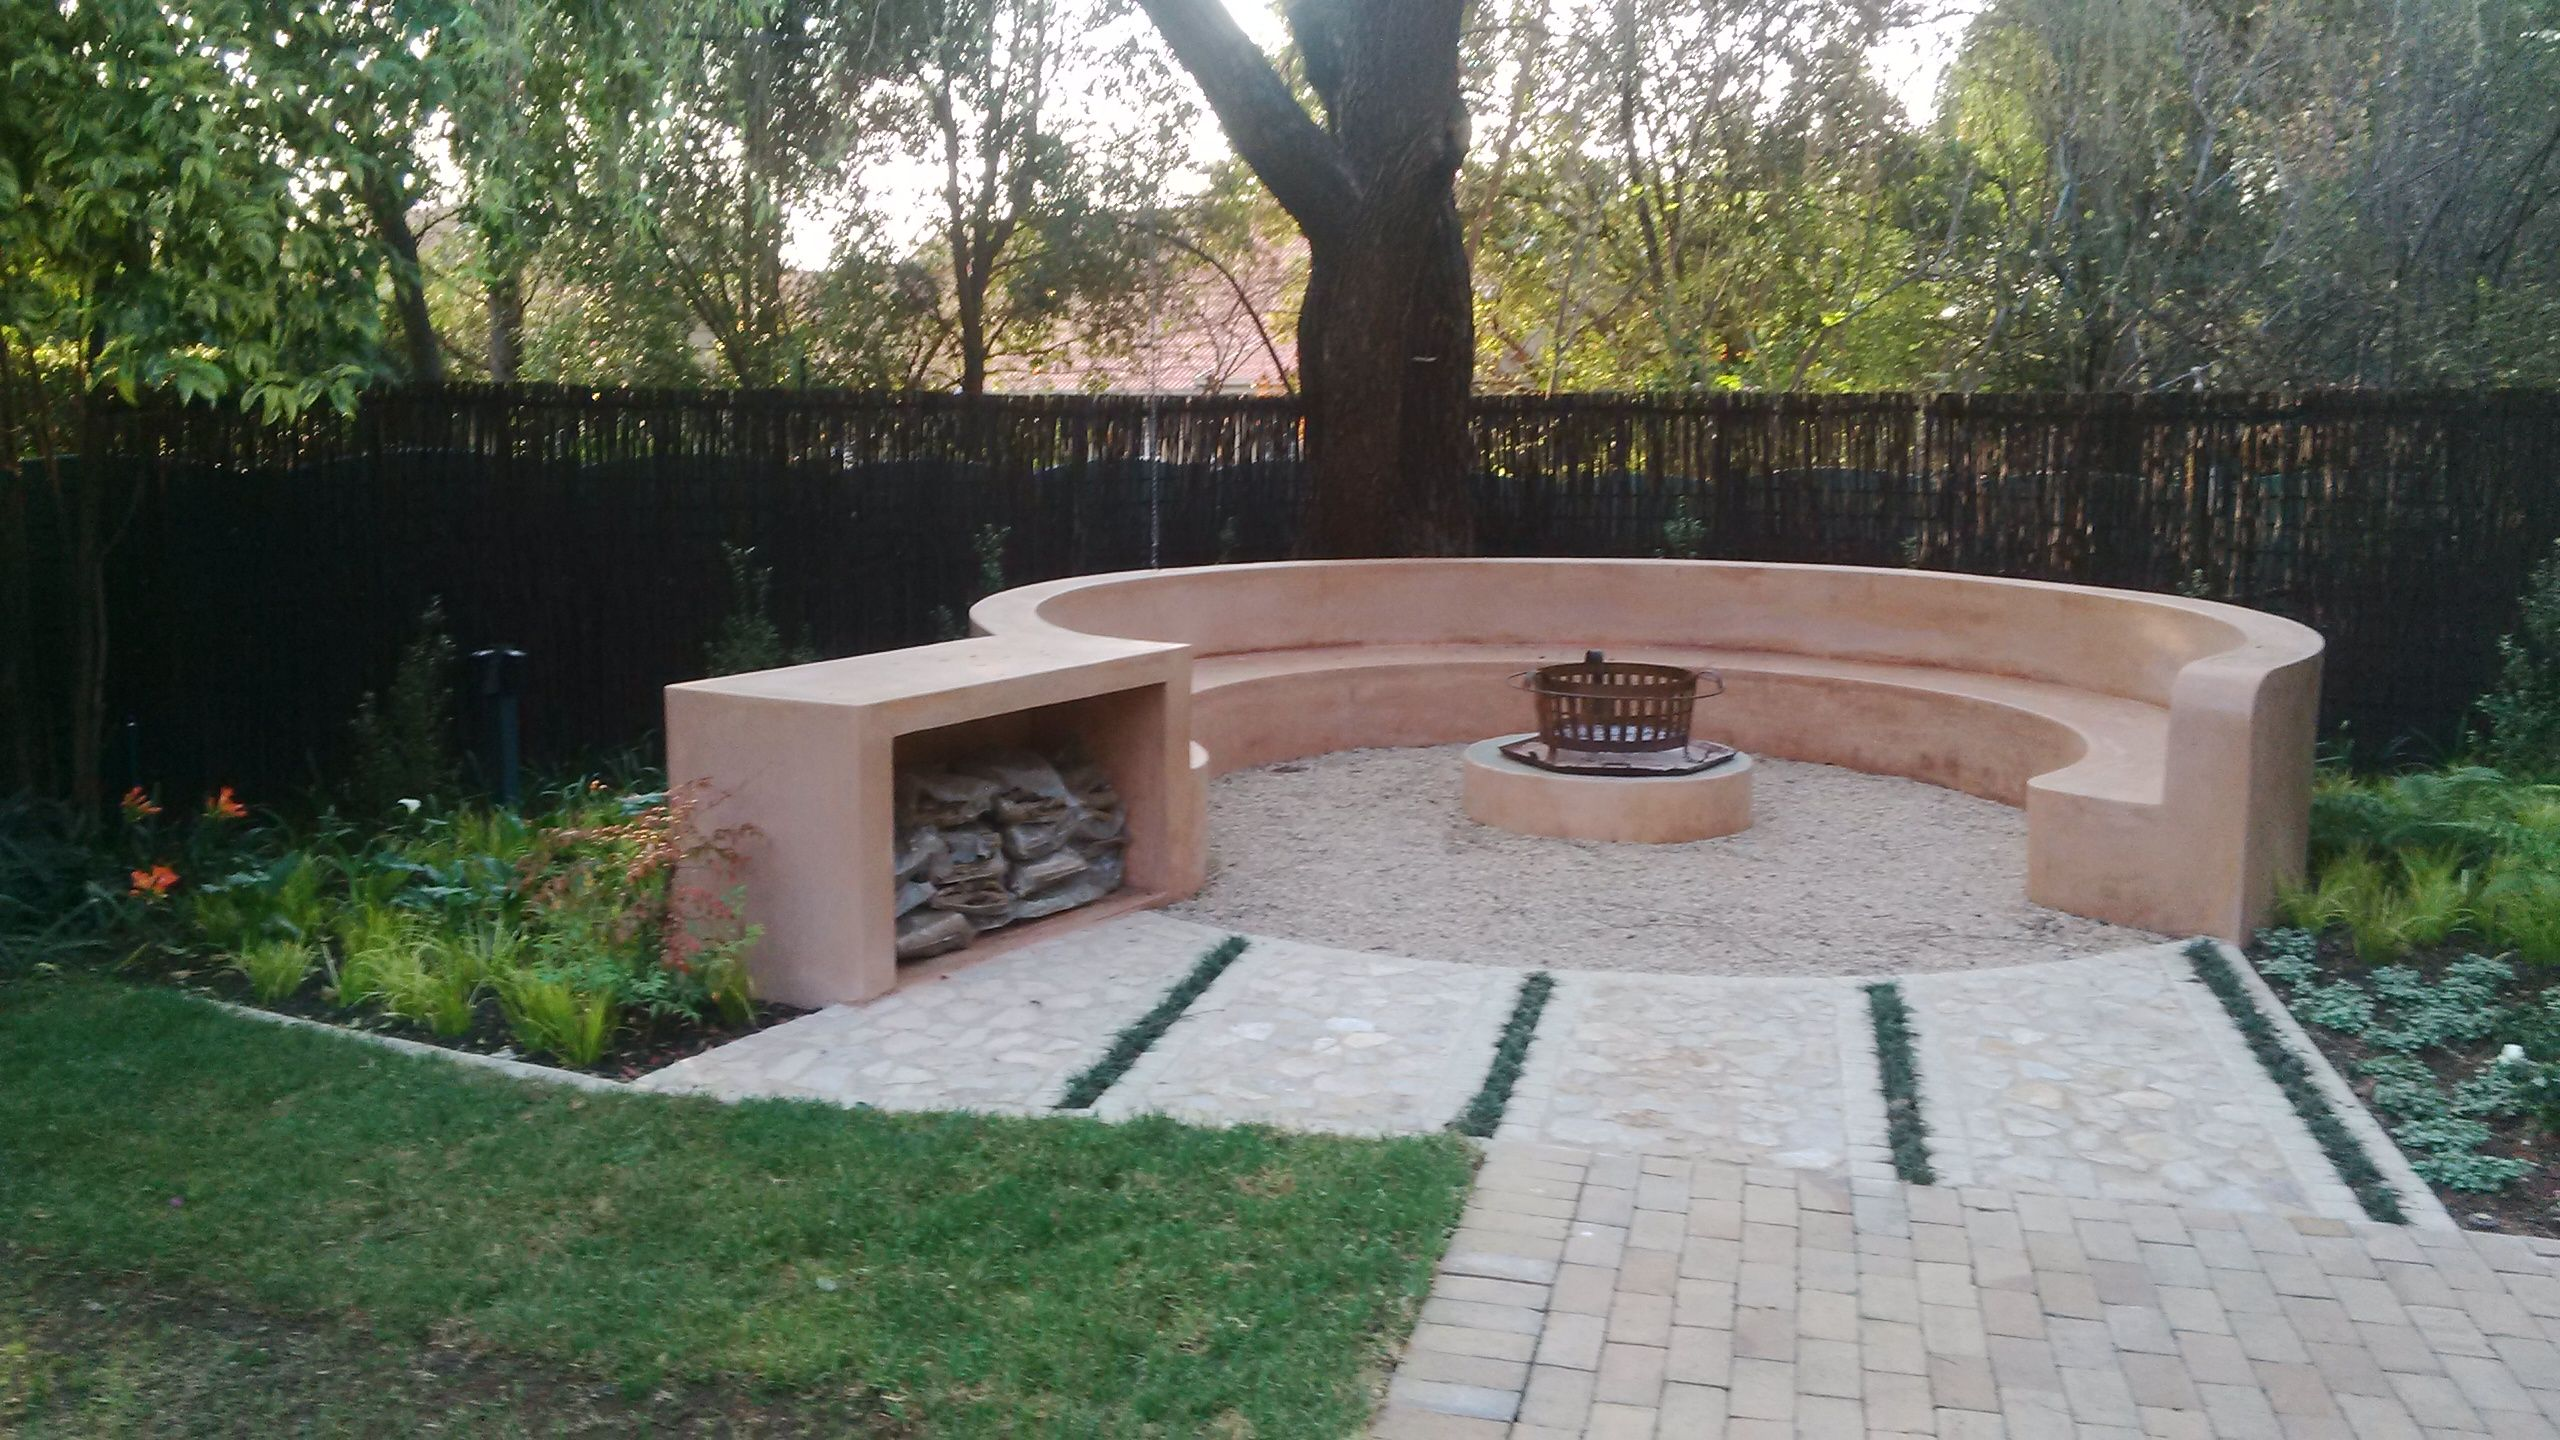 Fire Pits and Entertainment Areas | Backyard fire, Fire ... on Modern Boma Ideas id=54967